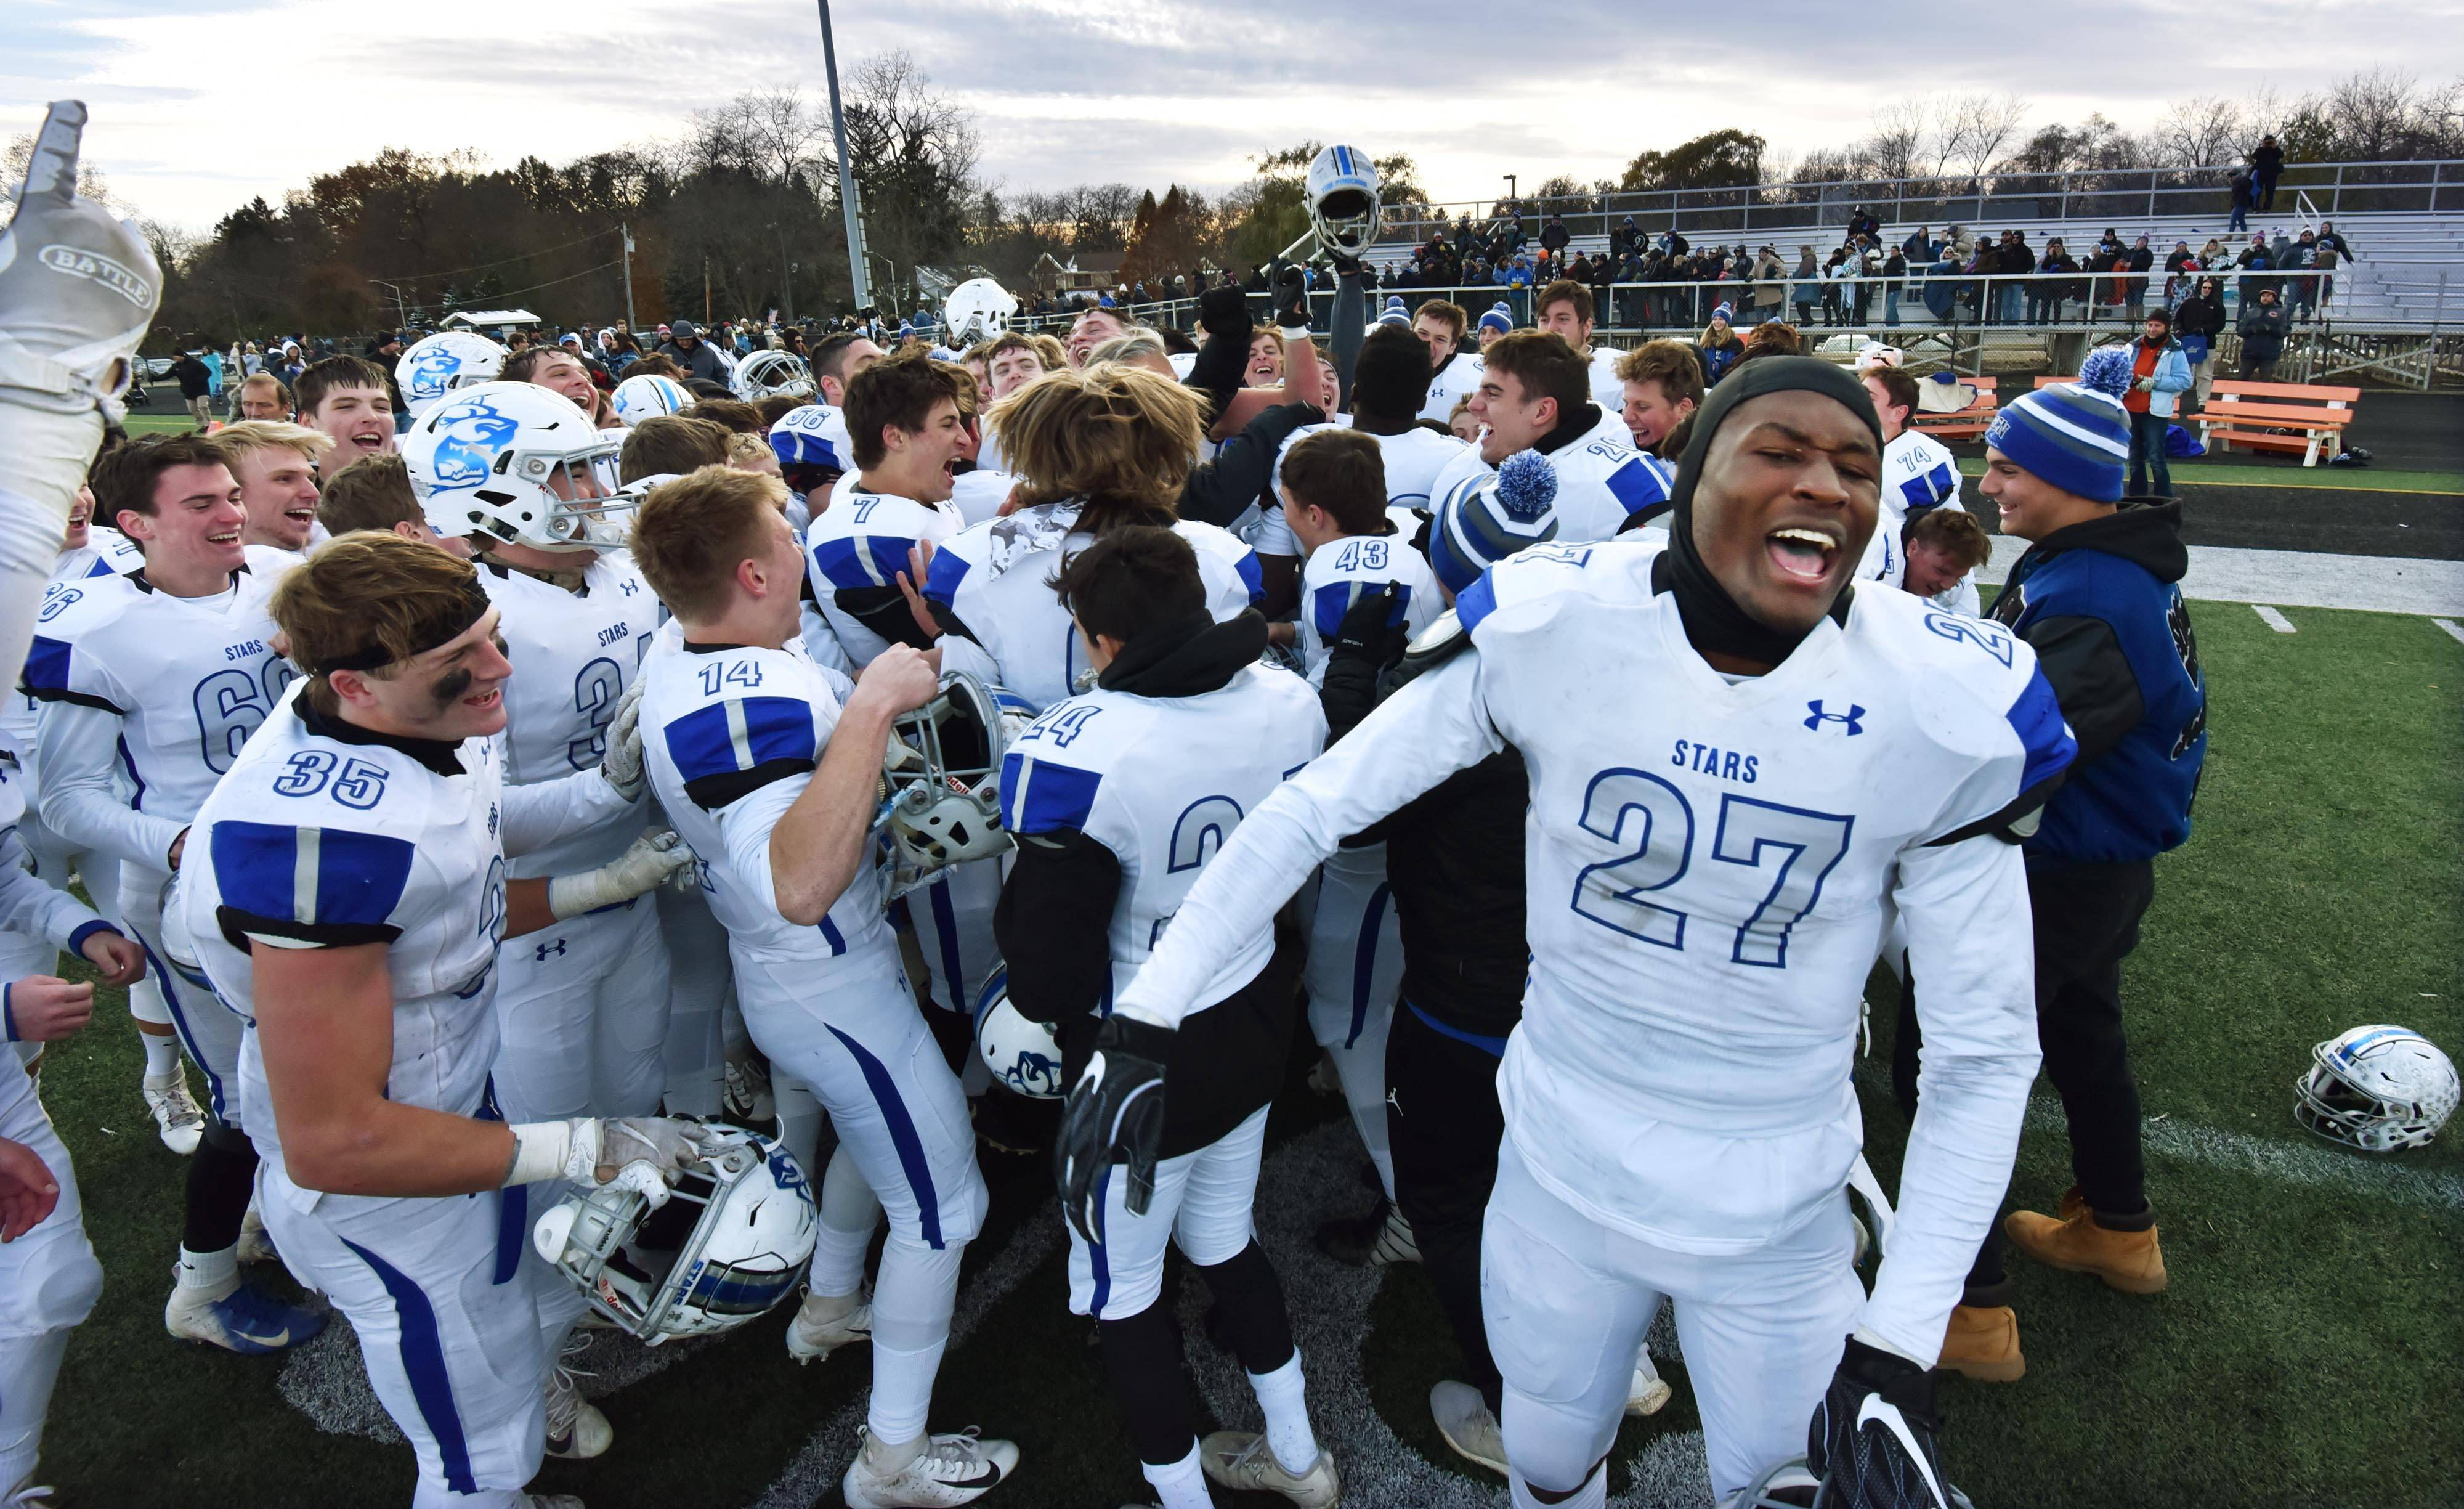 St. Charles North's Tyler Nubin celebrates with teammates after the North Stars defeated Wheaton Warrenville South Saturday in a quarterfinal playoff football game in Wheaton.